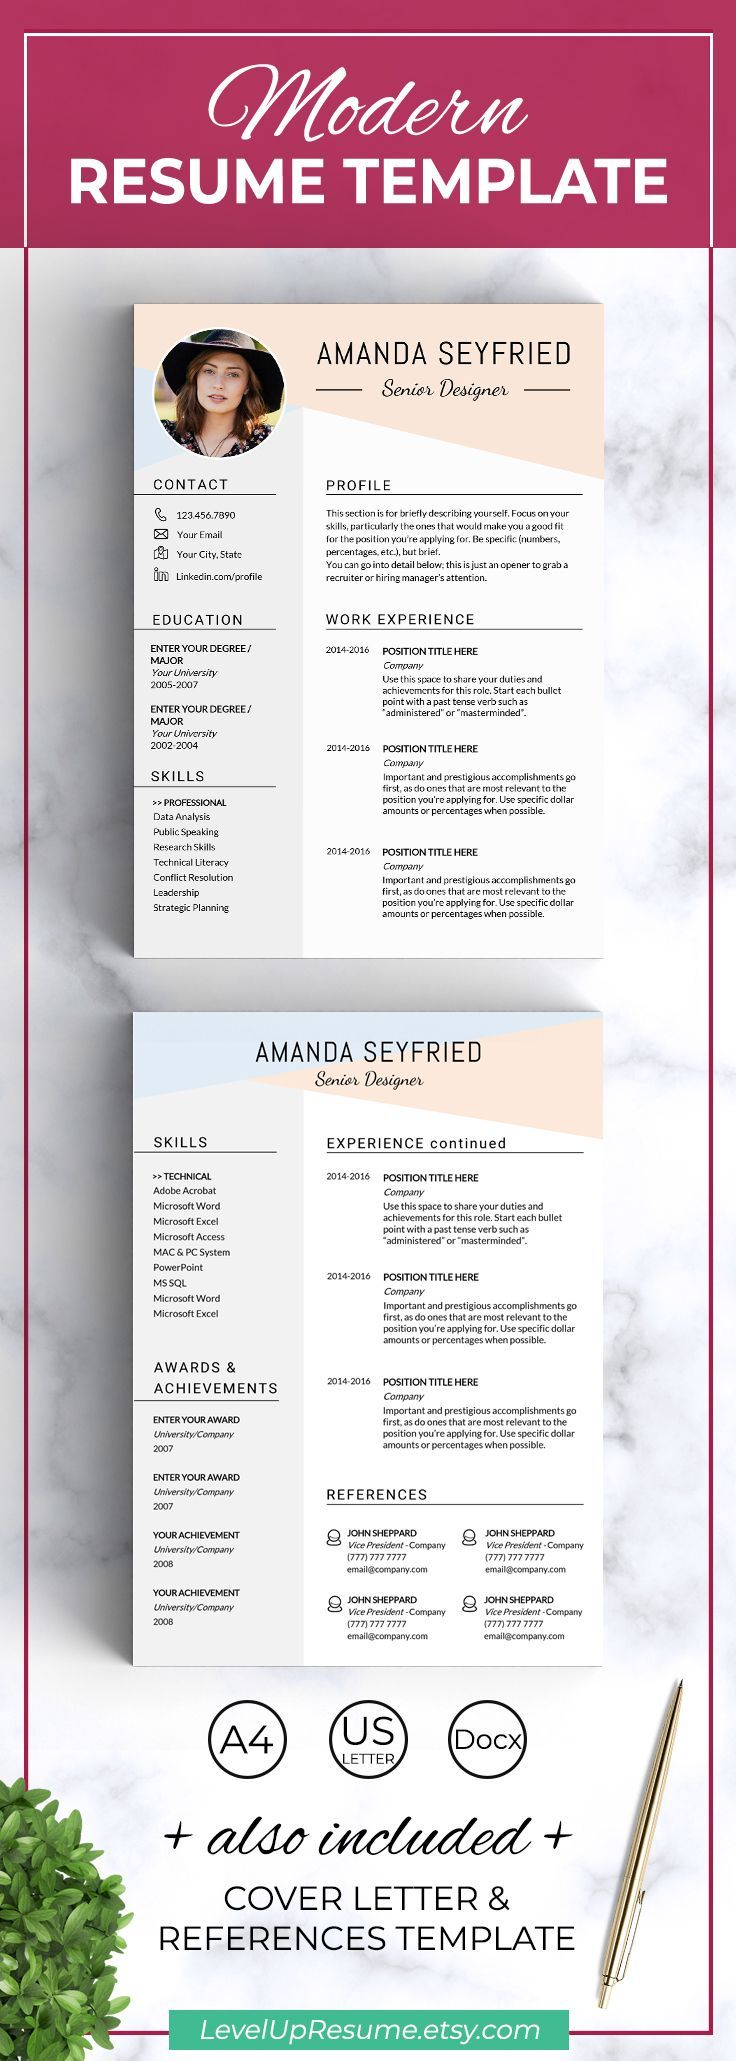 Feminine resume template Instant download Feminine cv